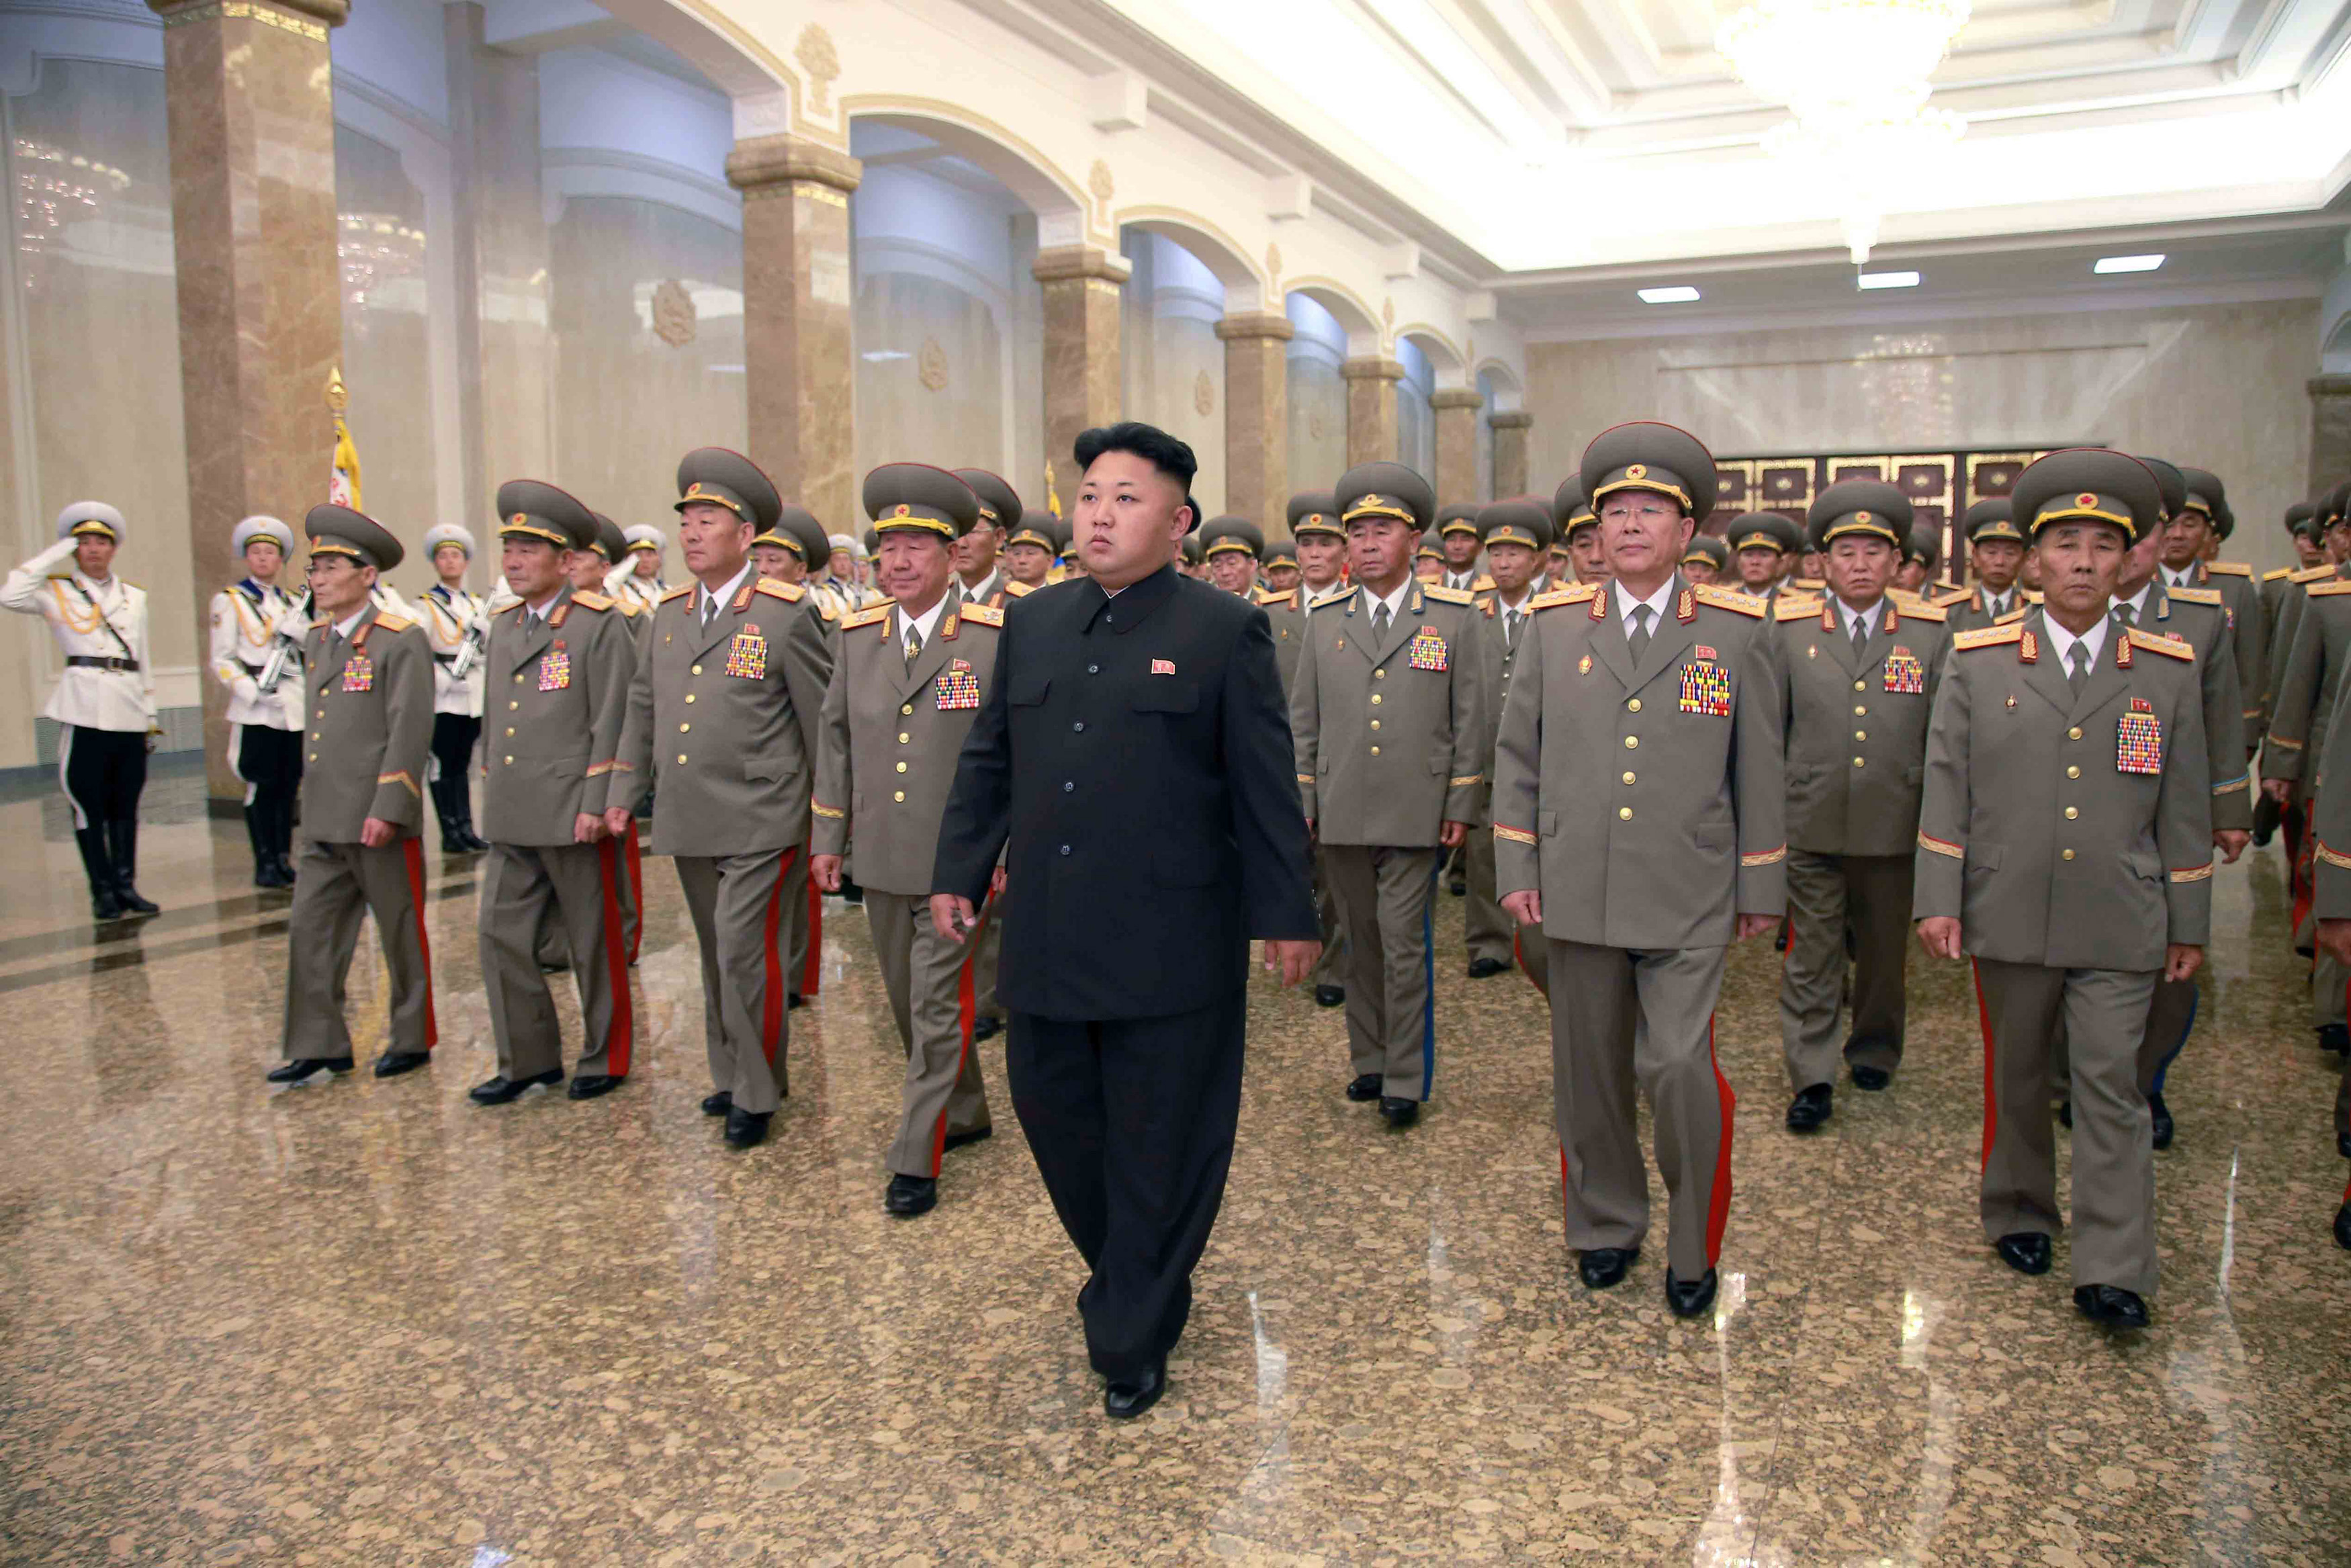 North Korean leader Kim Jong Un visits the Kumsusan Palace of the Sun in Pyongyang at midnight on July 8, 2014.